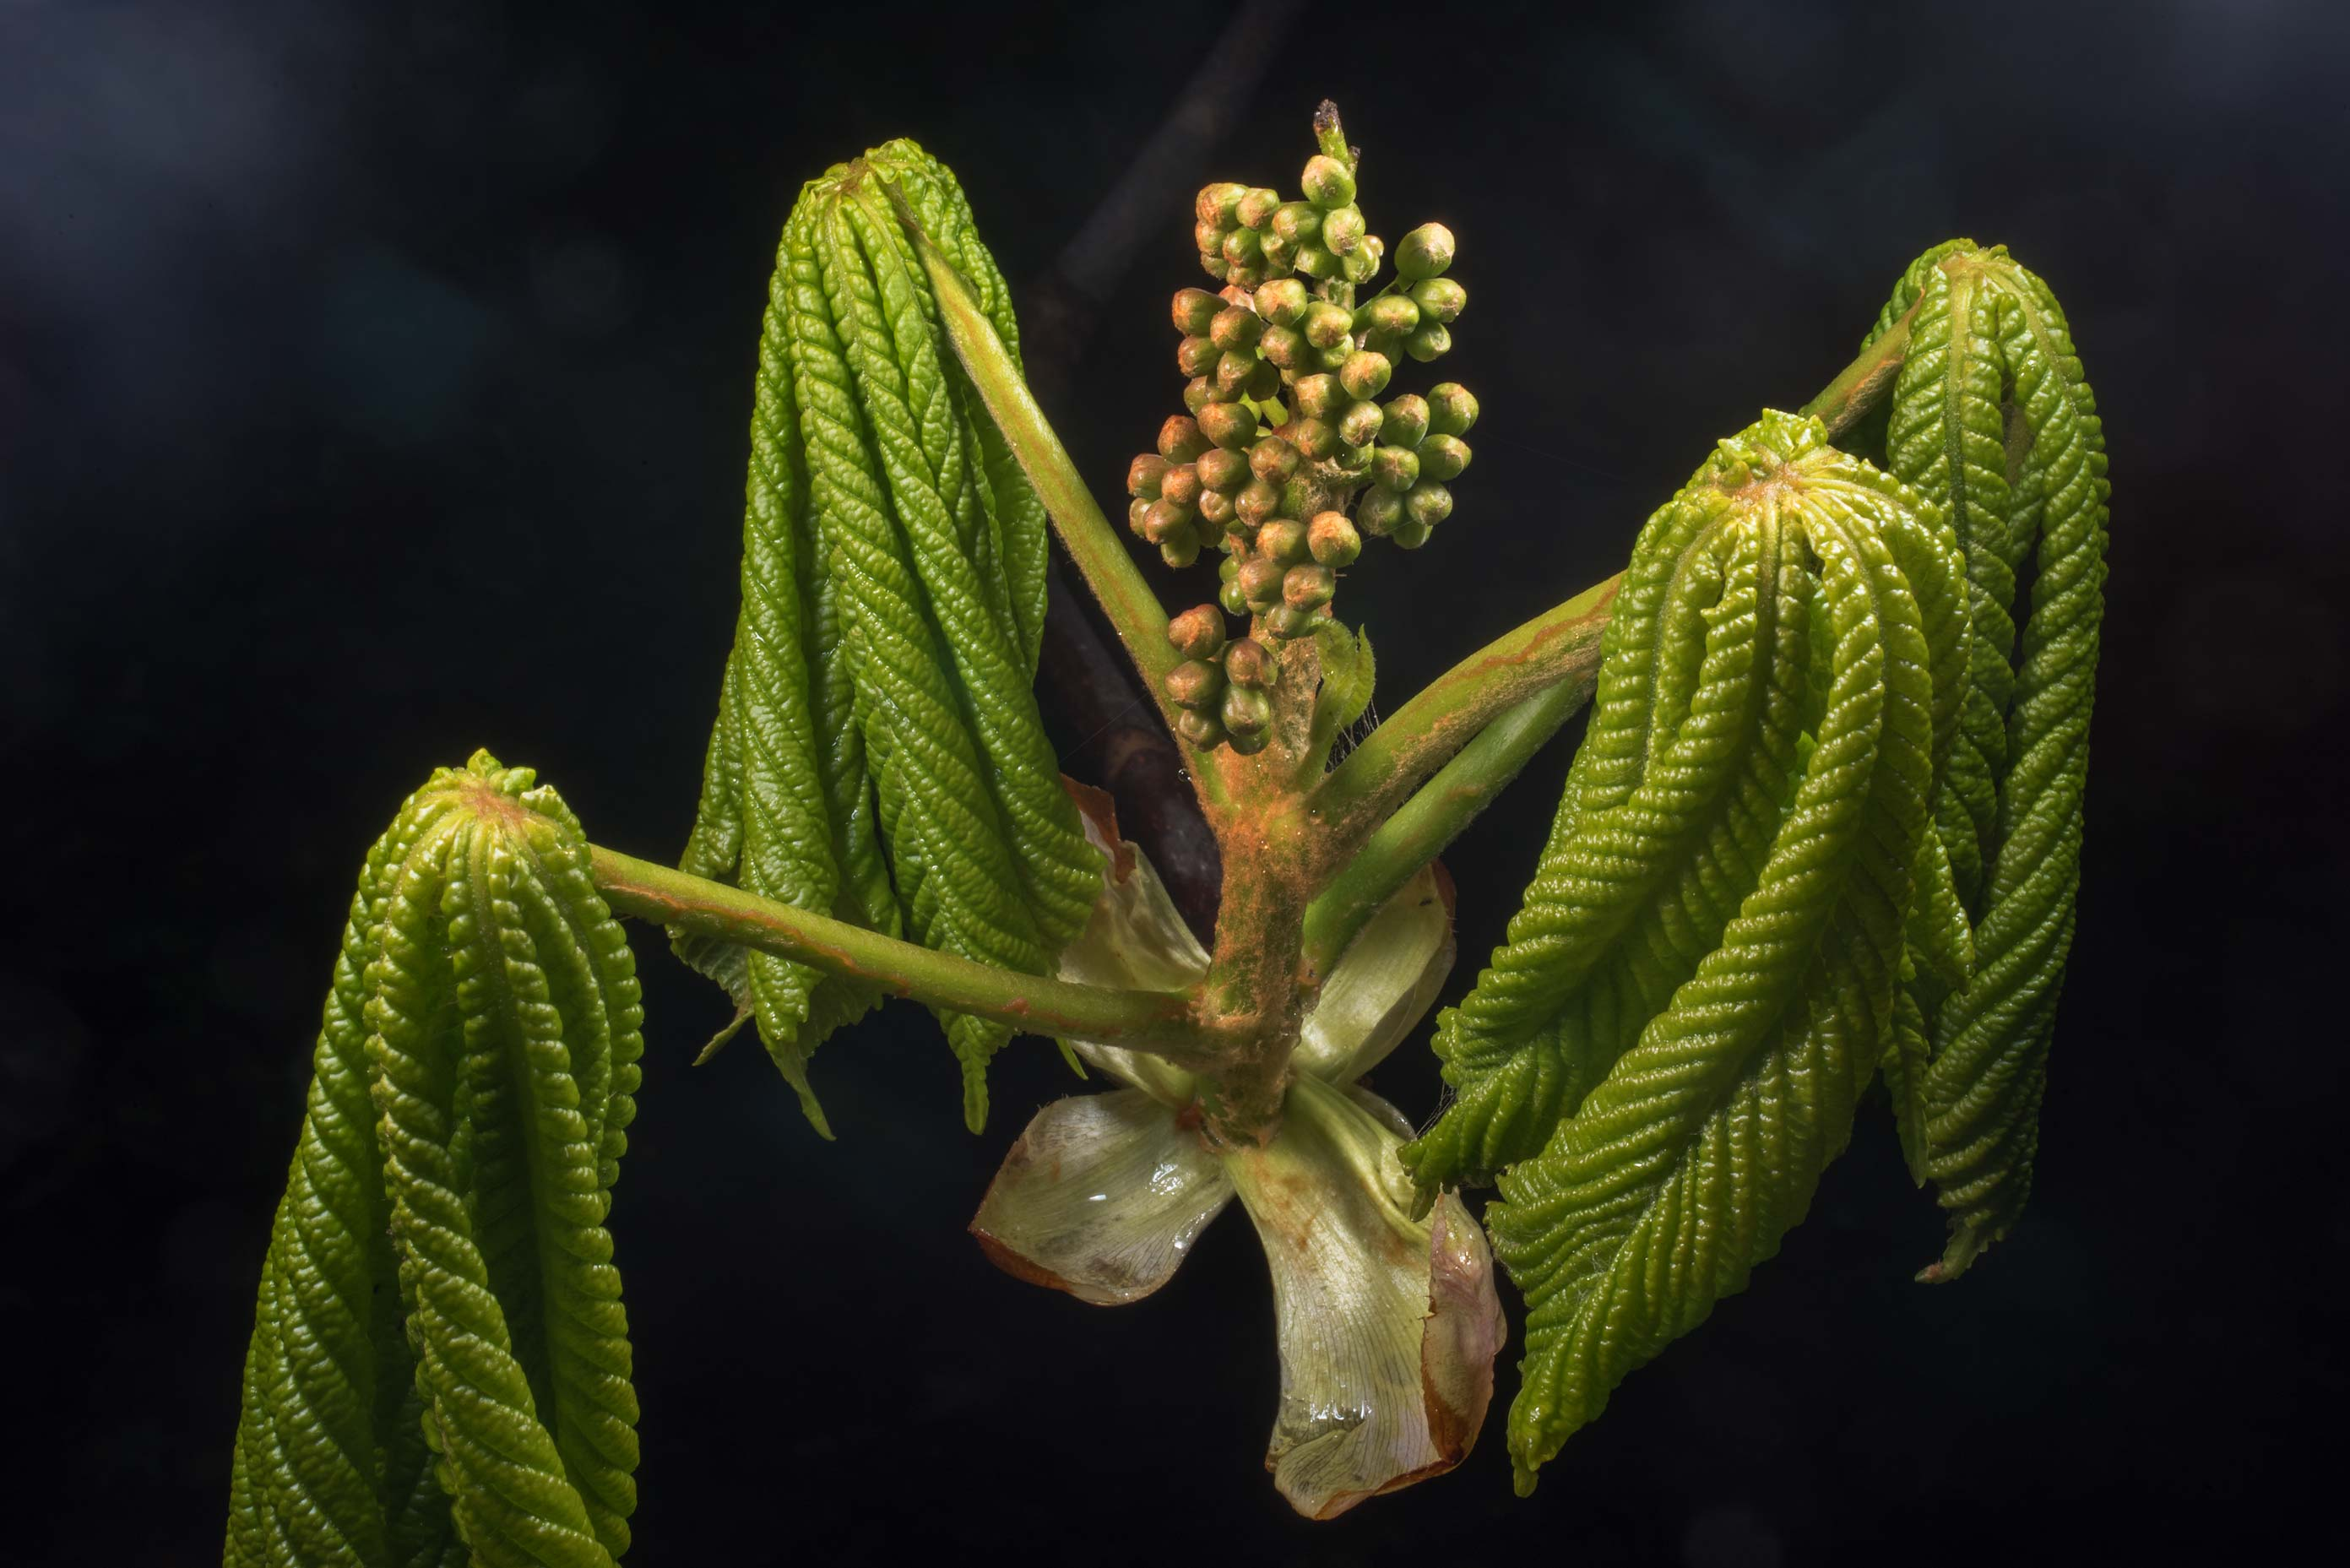 Horse chestnut weth flower buds in Peter the...Institute. St.Petersburg, Russia